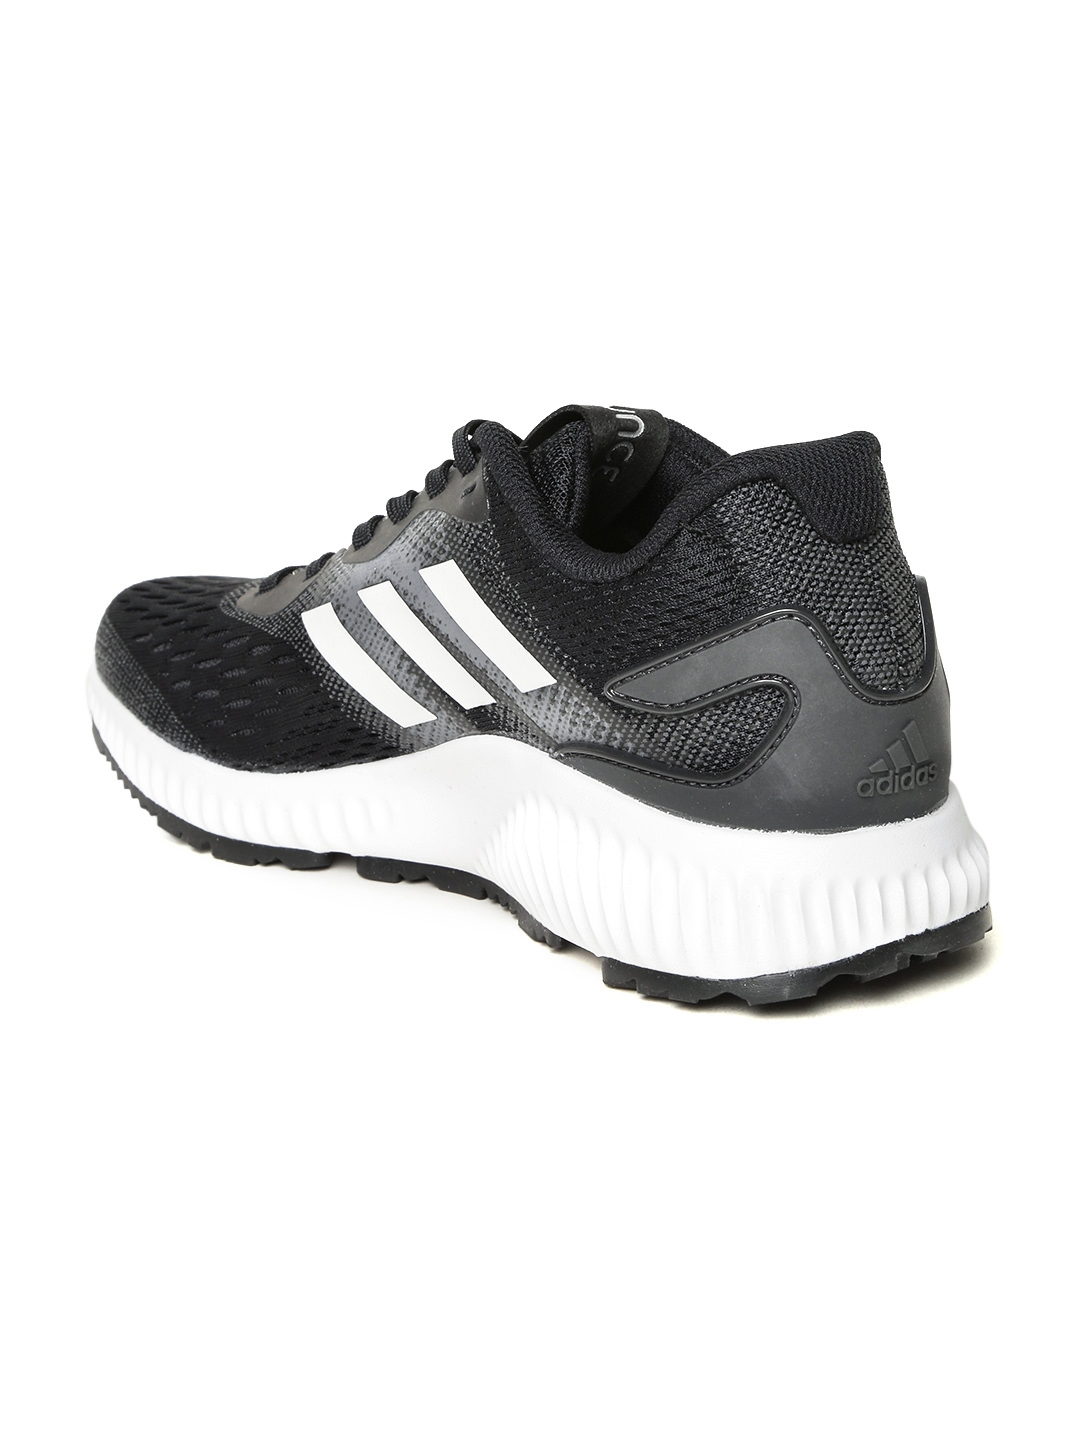 70bdcde368ea6 Buy ADIDAS Kids Black Aero Bounce J Running Shoes - Sports Shoes for ...